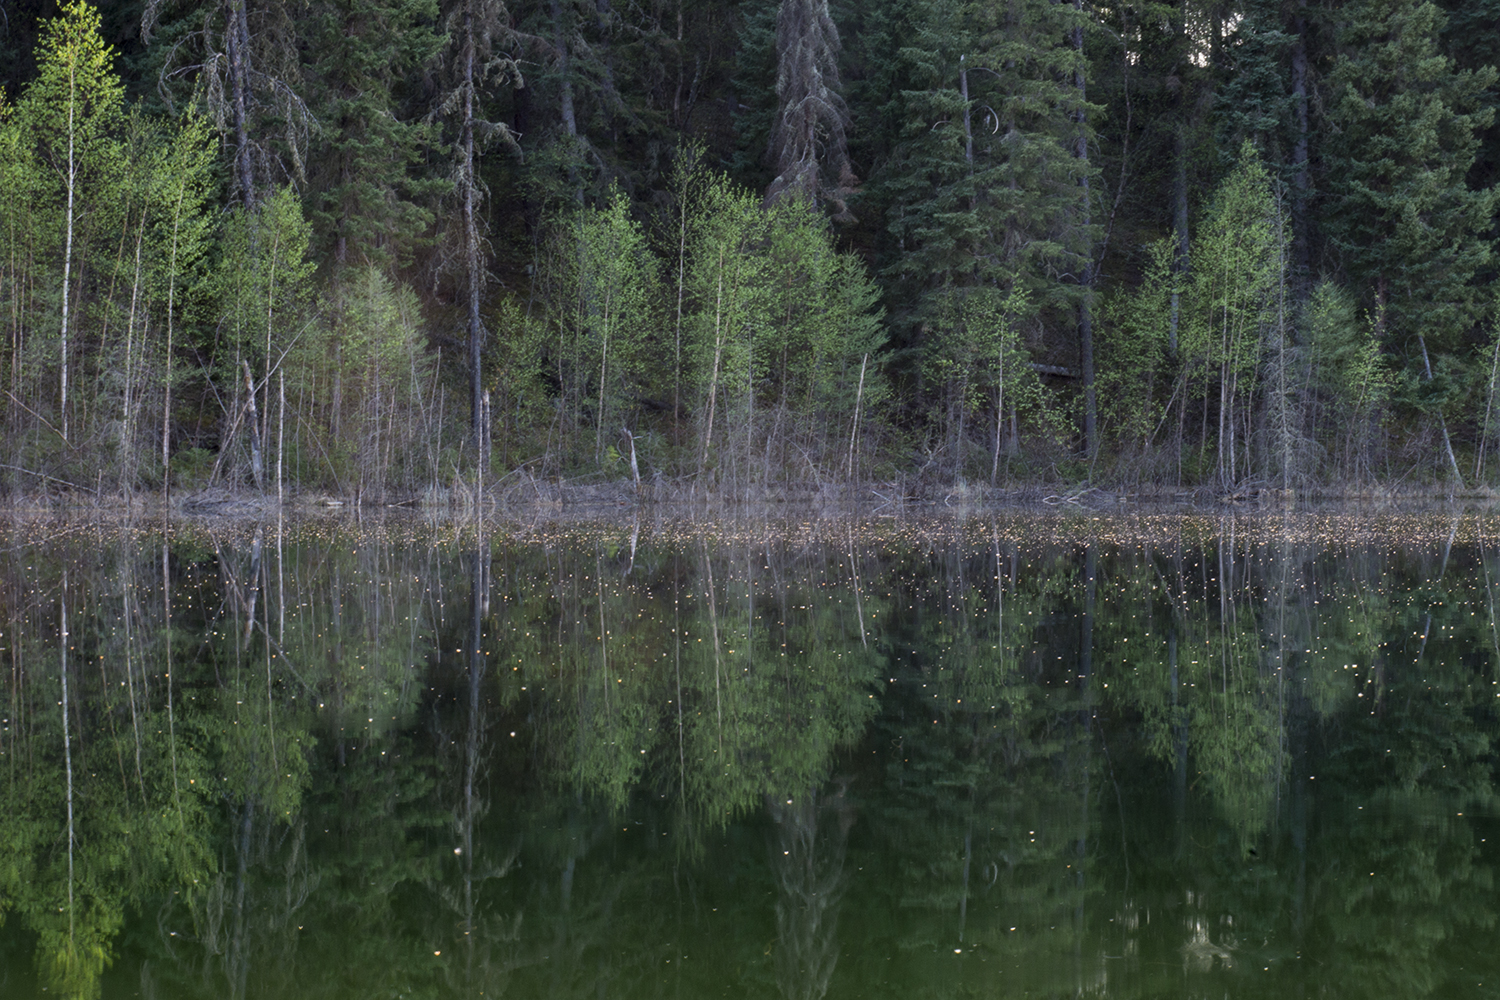 Reflections on Opal Lake, Narrow Hills Provincial Park